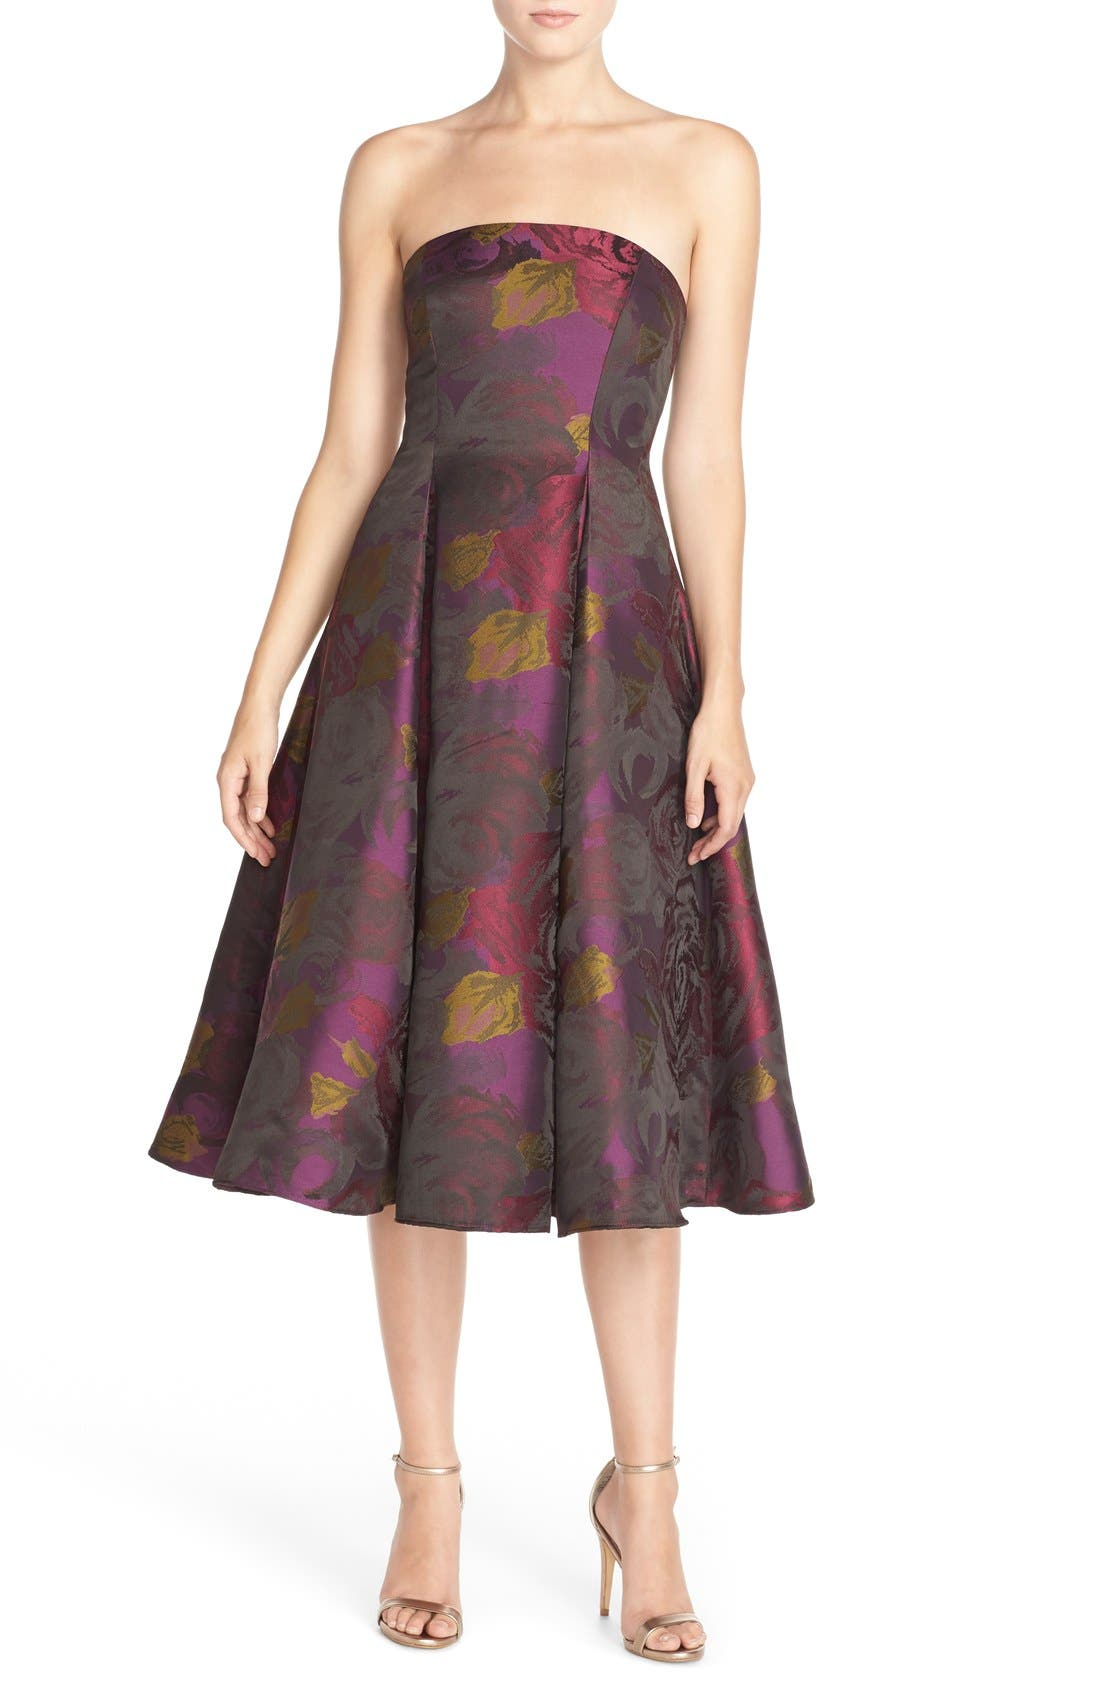 Main Image - Adrianna Papell Jacquard Tea Length Fit & Flare Dress